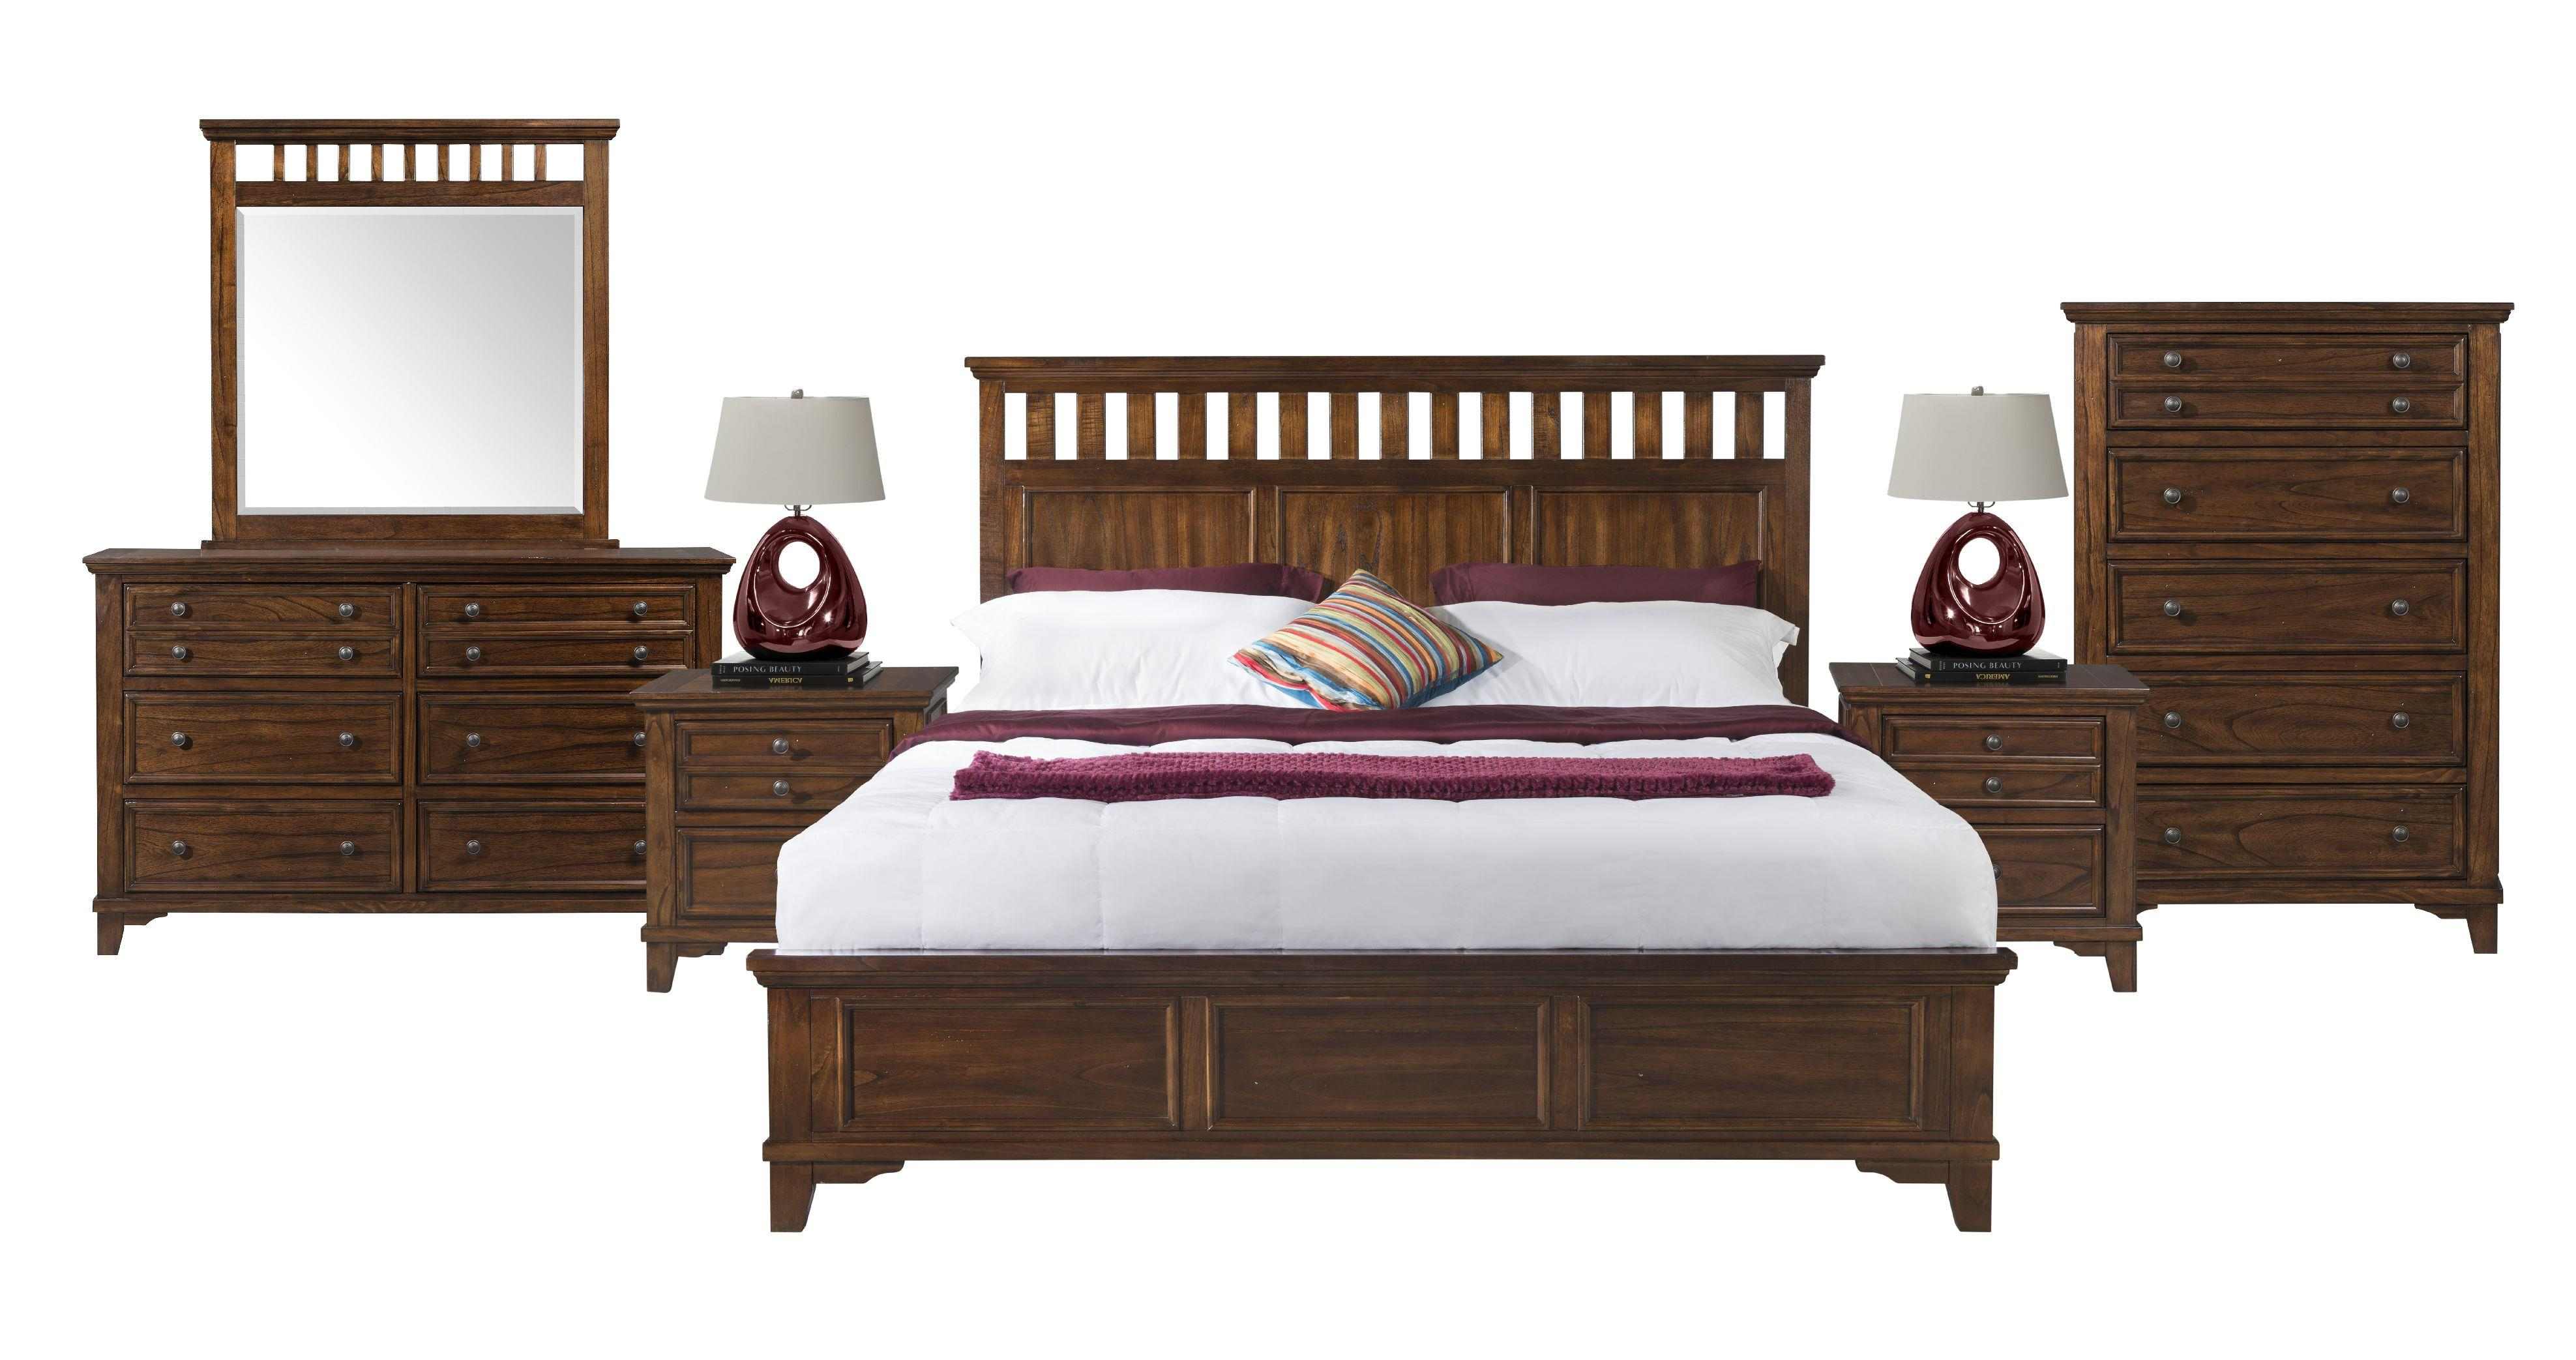 Elements International Woodlands Wd600dr Dresser With Eight Dovetail Drawers Furniture